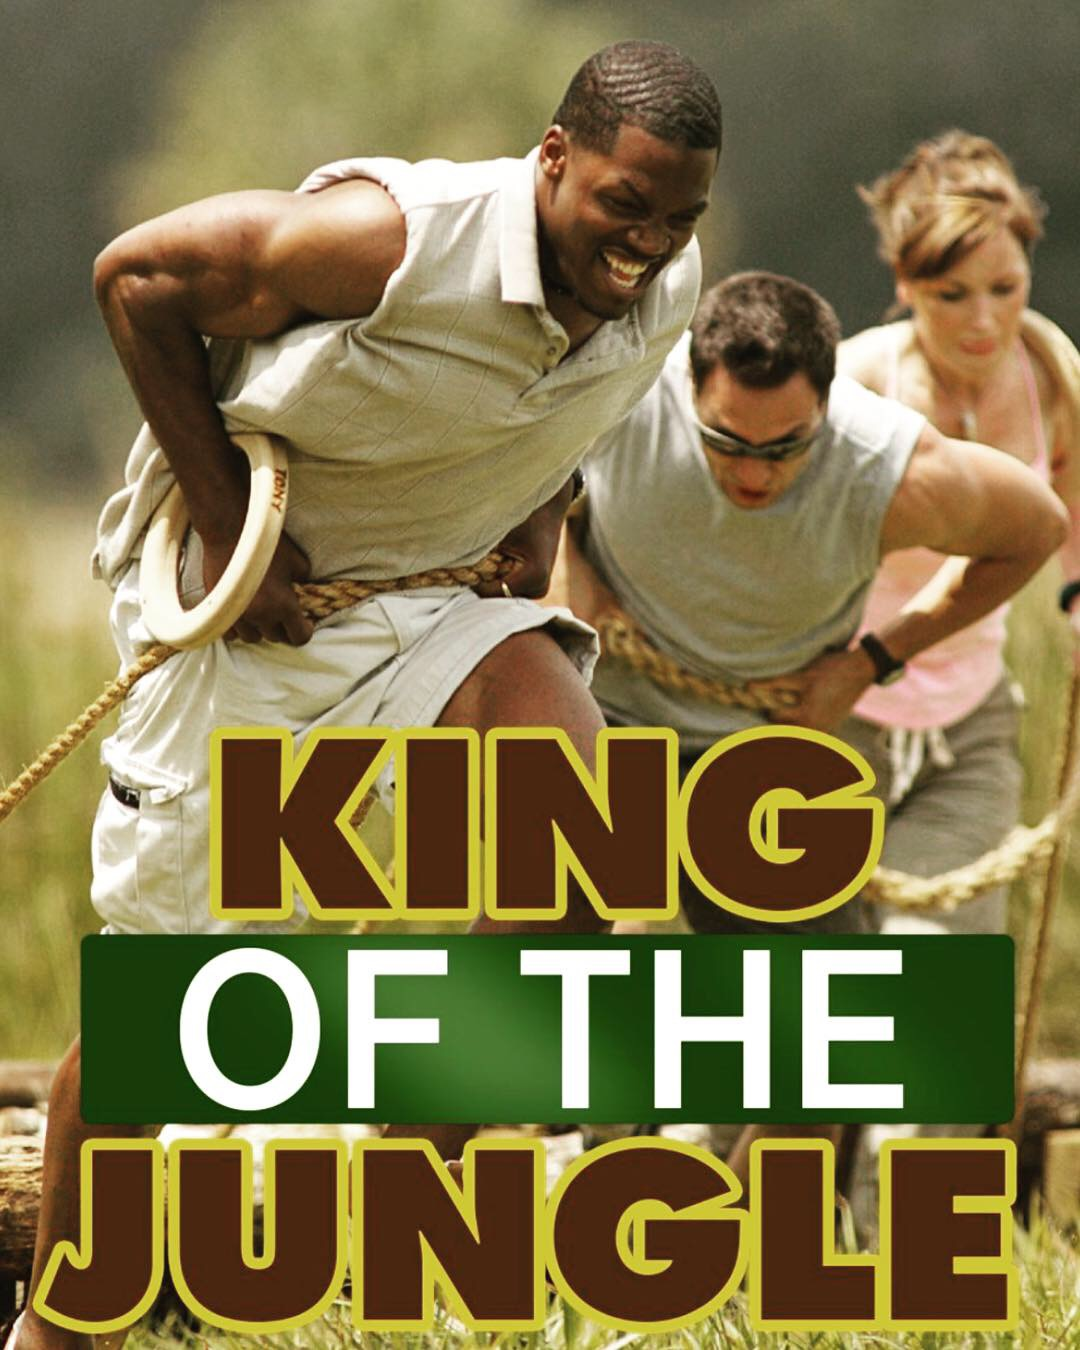 """In 2004, TC deciding on a whim to audition for the second season of Animal Planet's new hit reality television show, """"King of the Jungle"""", and not only was he selected—but emerged as the winner! The show centered around animals and their amazing abilities, with 12 contestants fighting for the grand prize of hosting his or her own show on the network. After 5 weeks and 13 episodes, TC was crowned champion, and was awarded with a hosting job on Animal Planet which aired in the fall of 2004. This was TC's first ever appearance on national TV. -"""